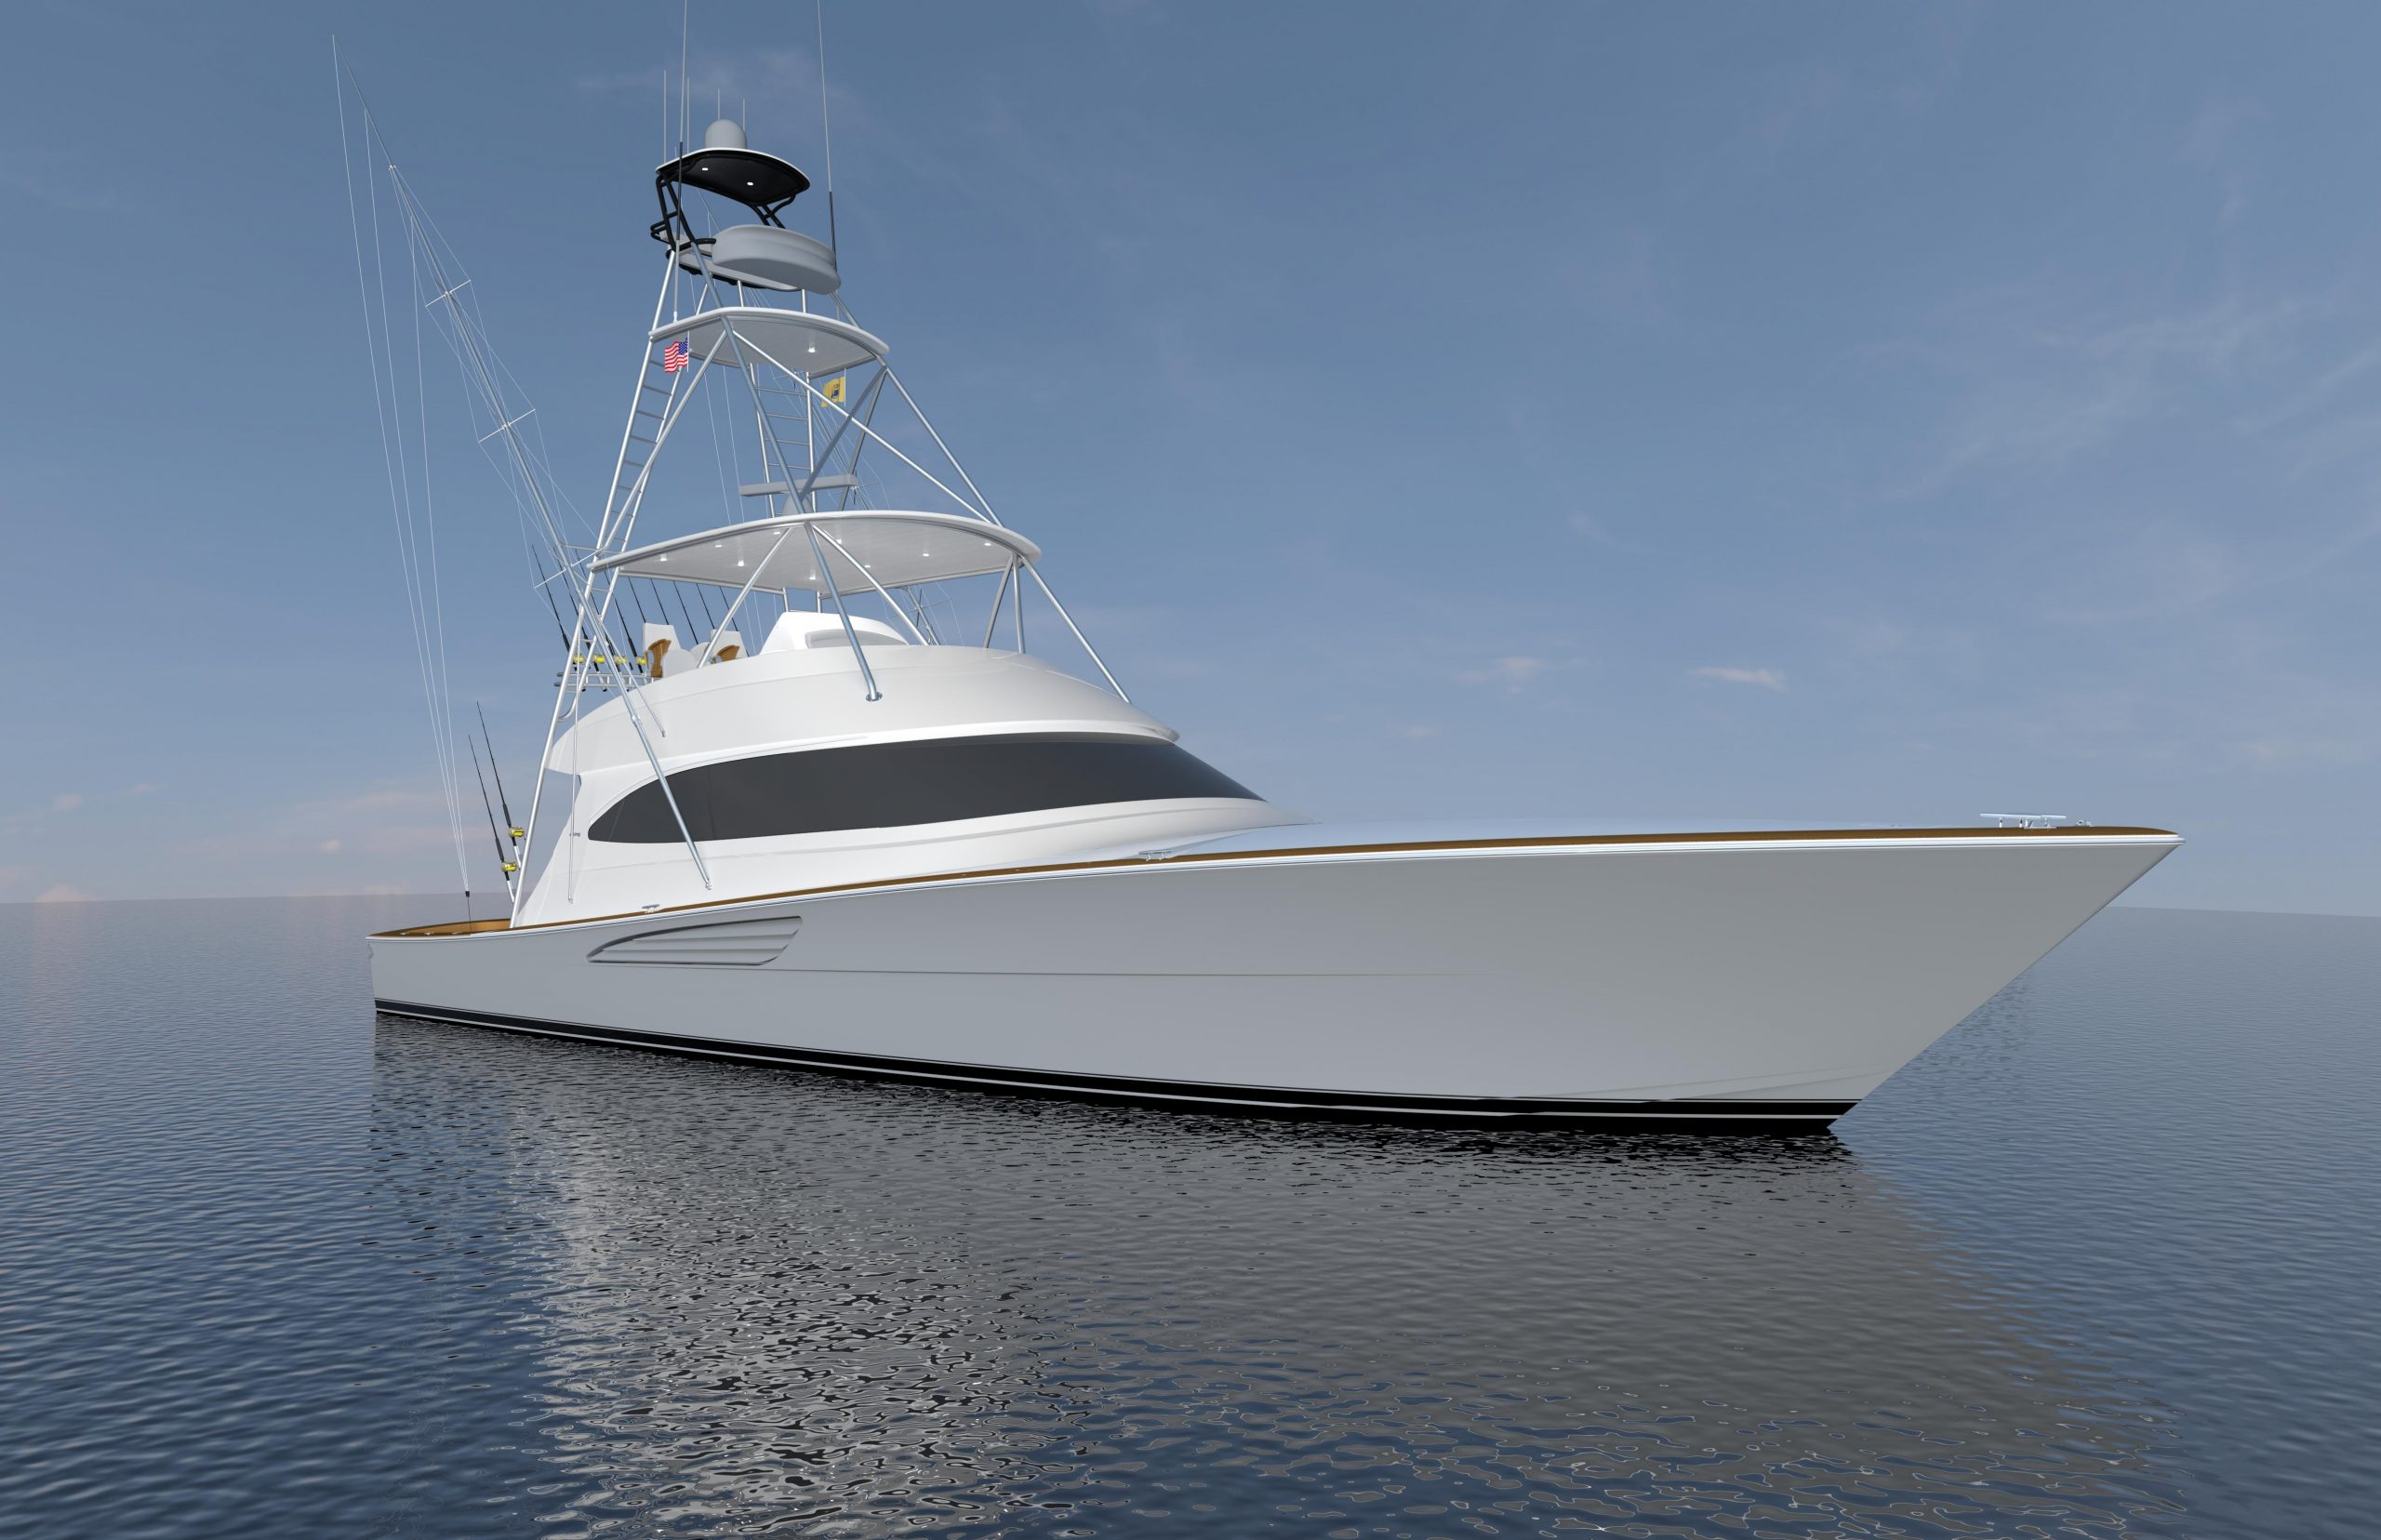 Best Offshore Fishing Boats For 2022